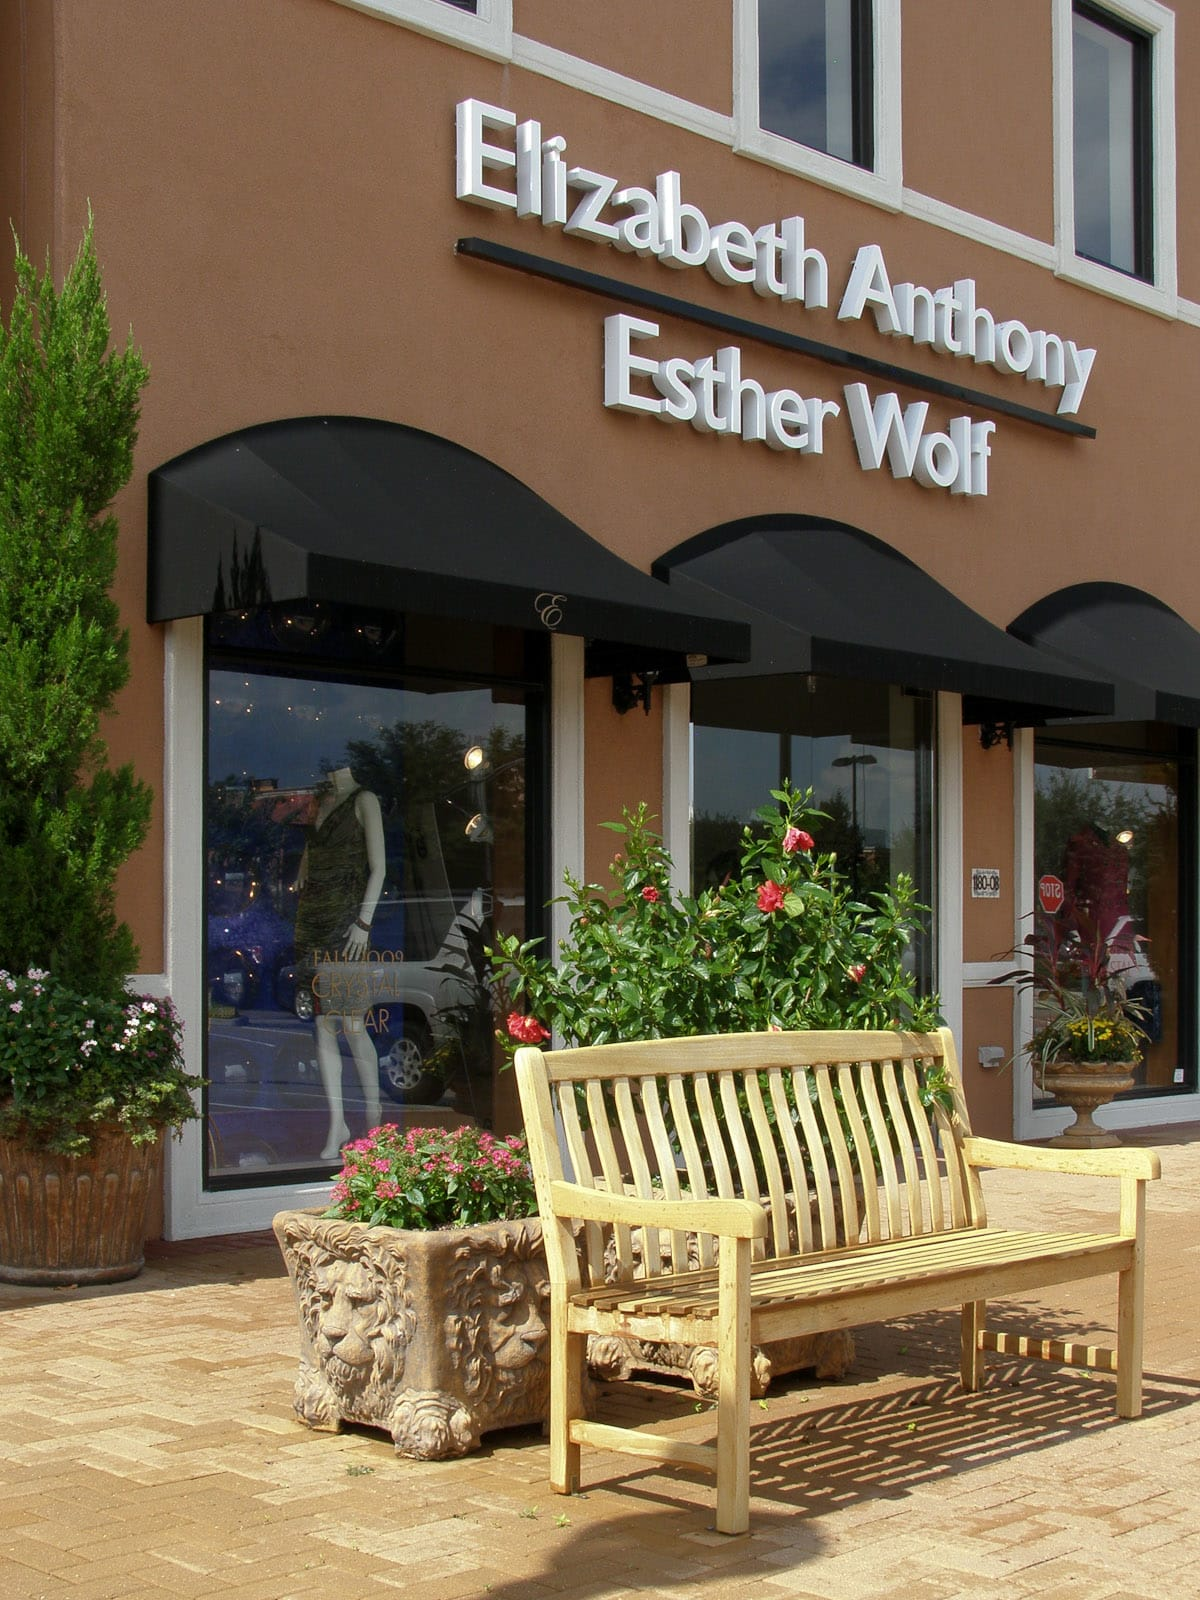 Places-Shopping-Elizabeth Anthony_Esther Wolf exterior day